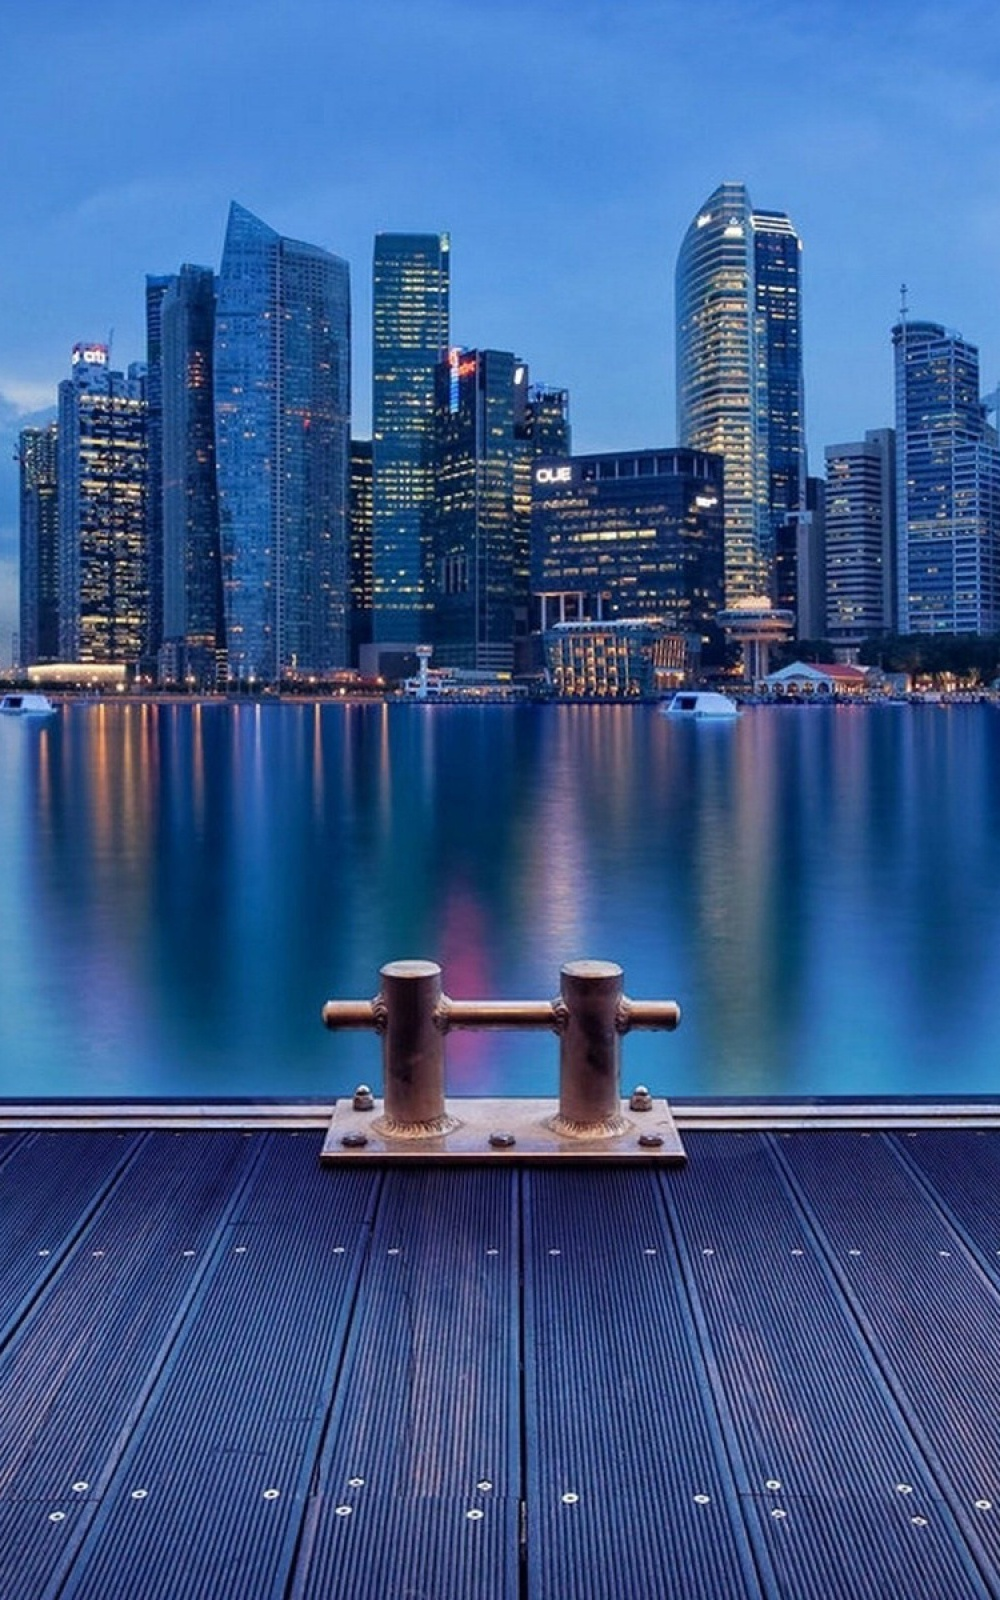 Wallpaper Download Cute Lovers 60 Most Downloaded Architecture Iphone Wallpapers